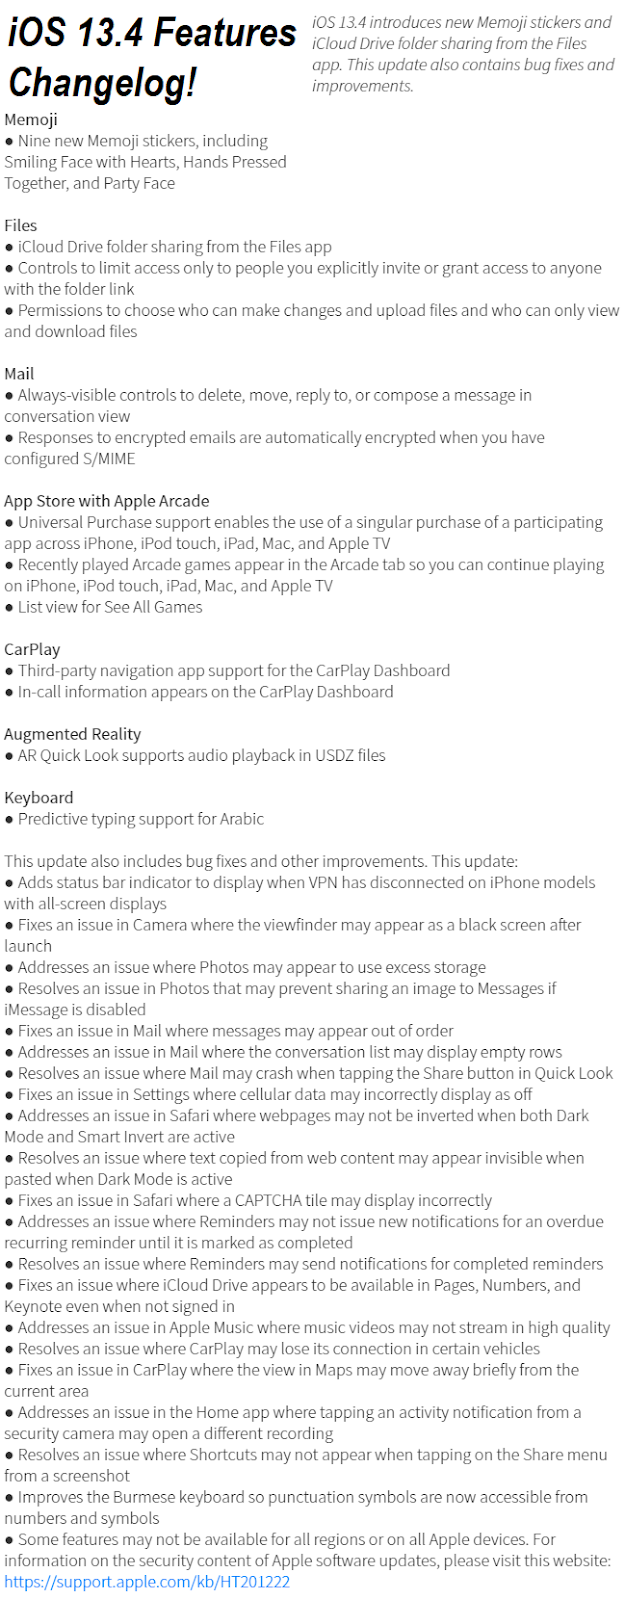 iOS 13.4 Features Changelog